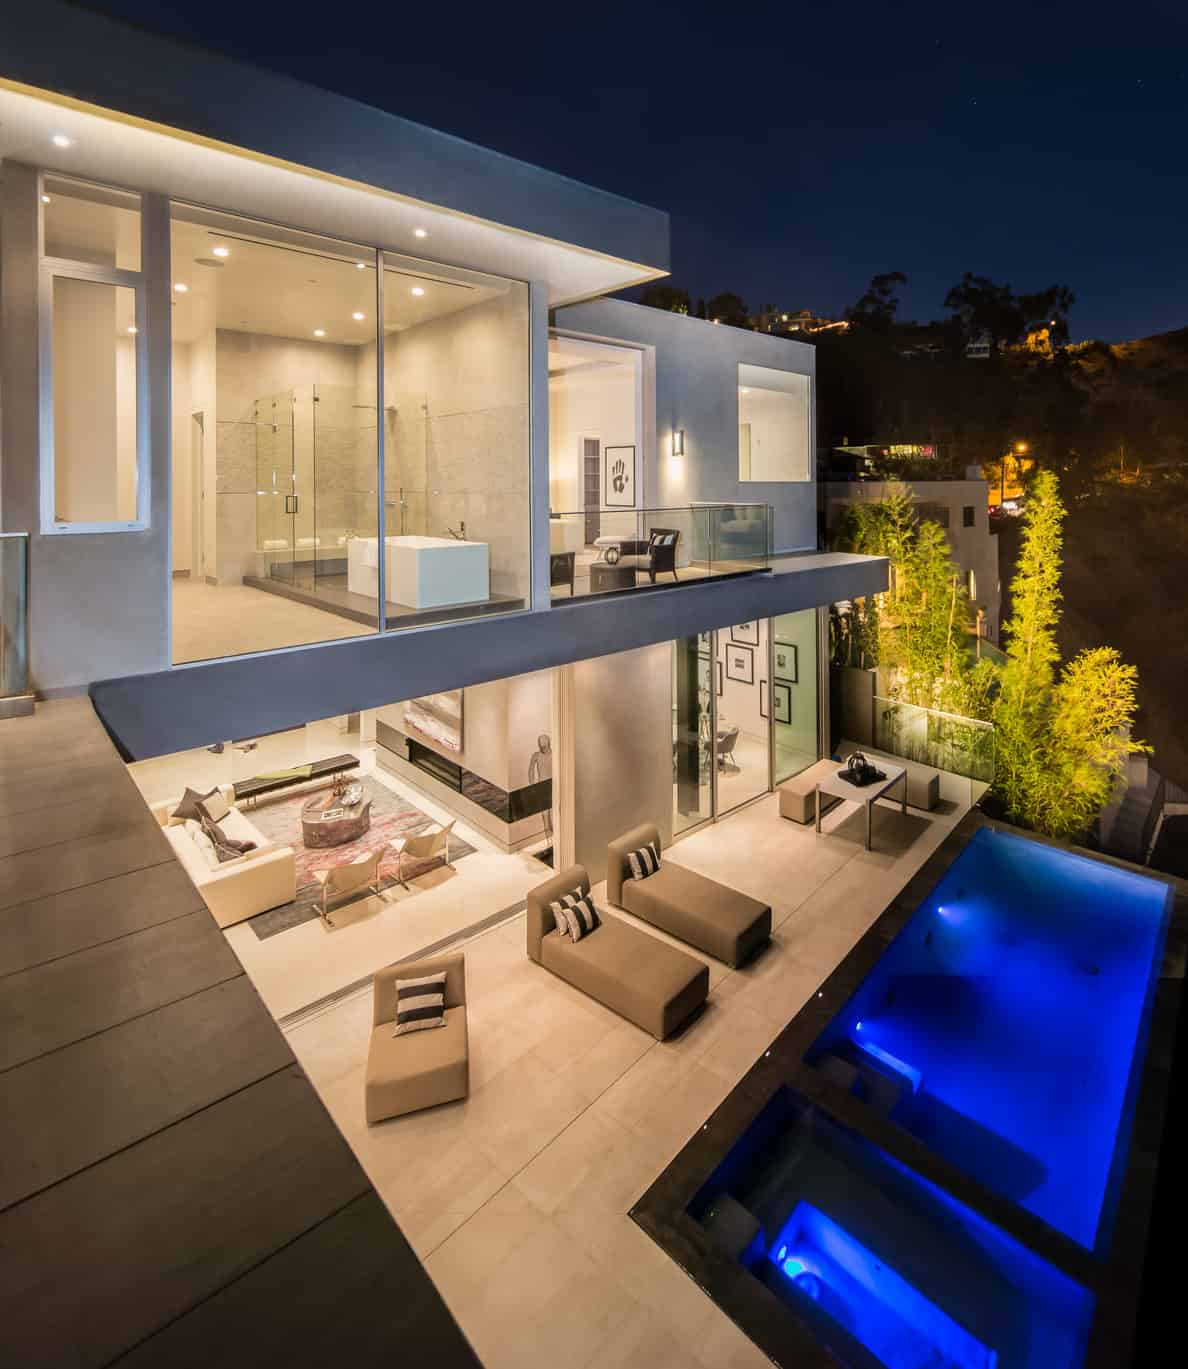 Amazing Outdoor Kitchens That You Might Have While Living: Modern LA Property Boasting Magnificent Outdoor Living